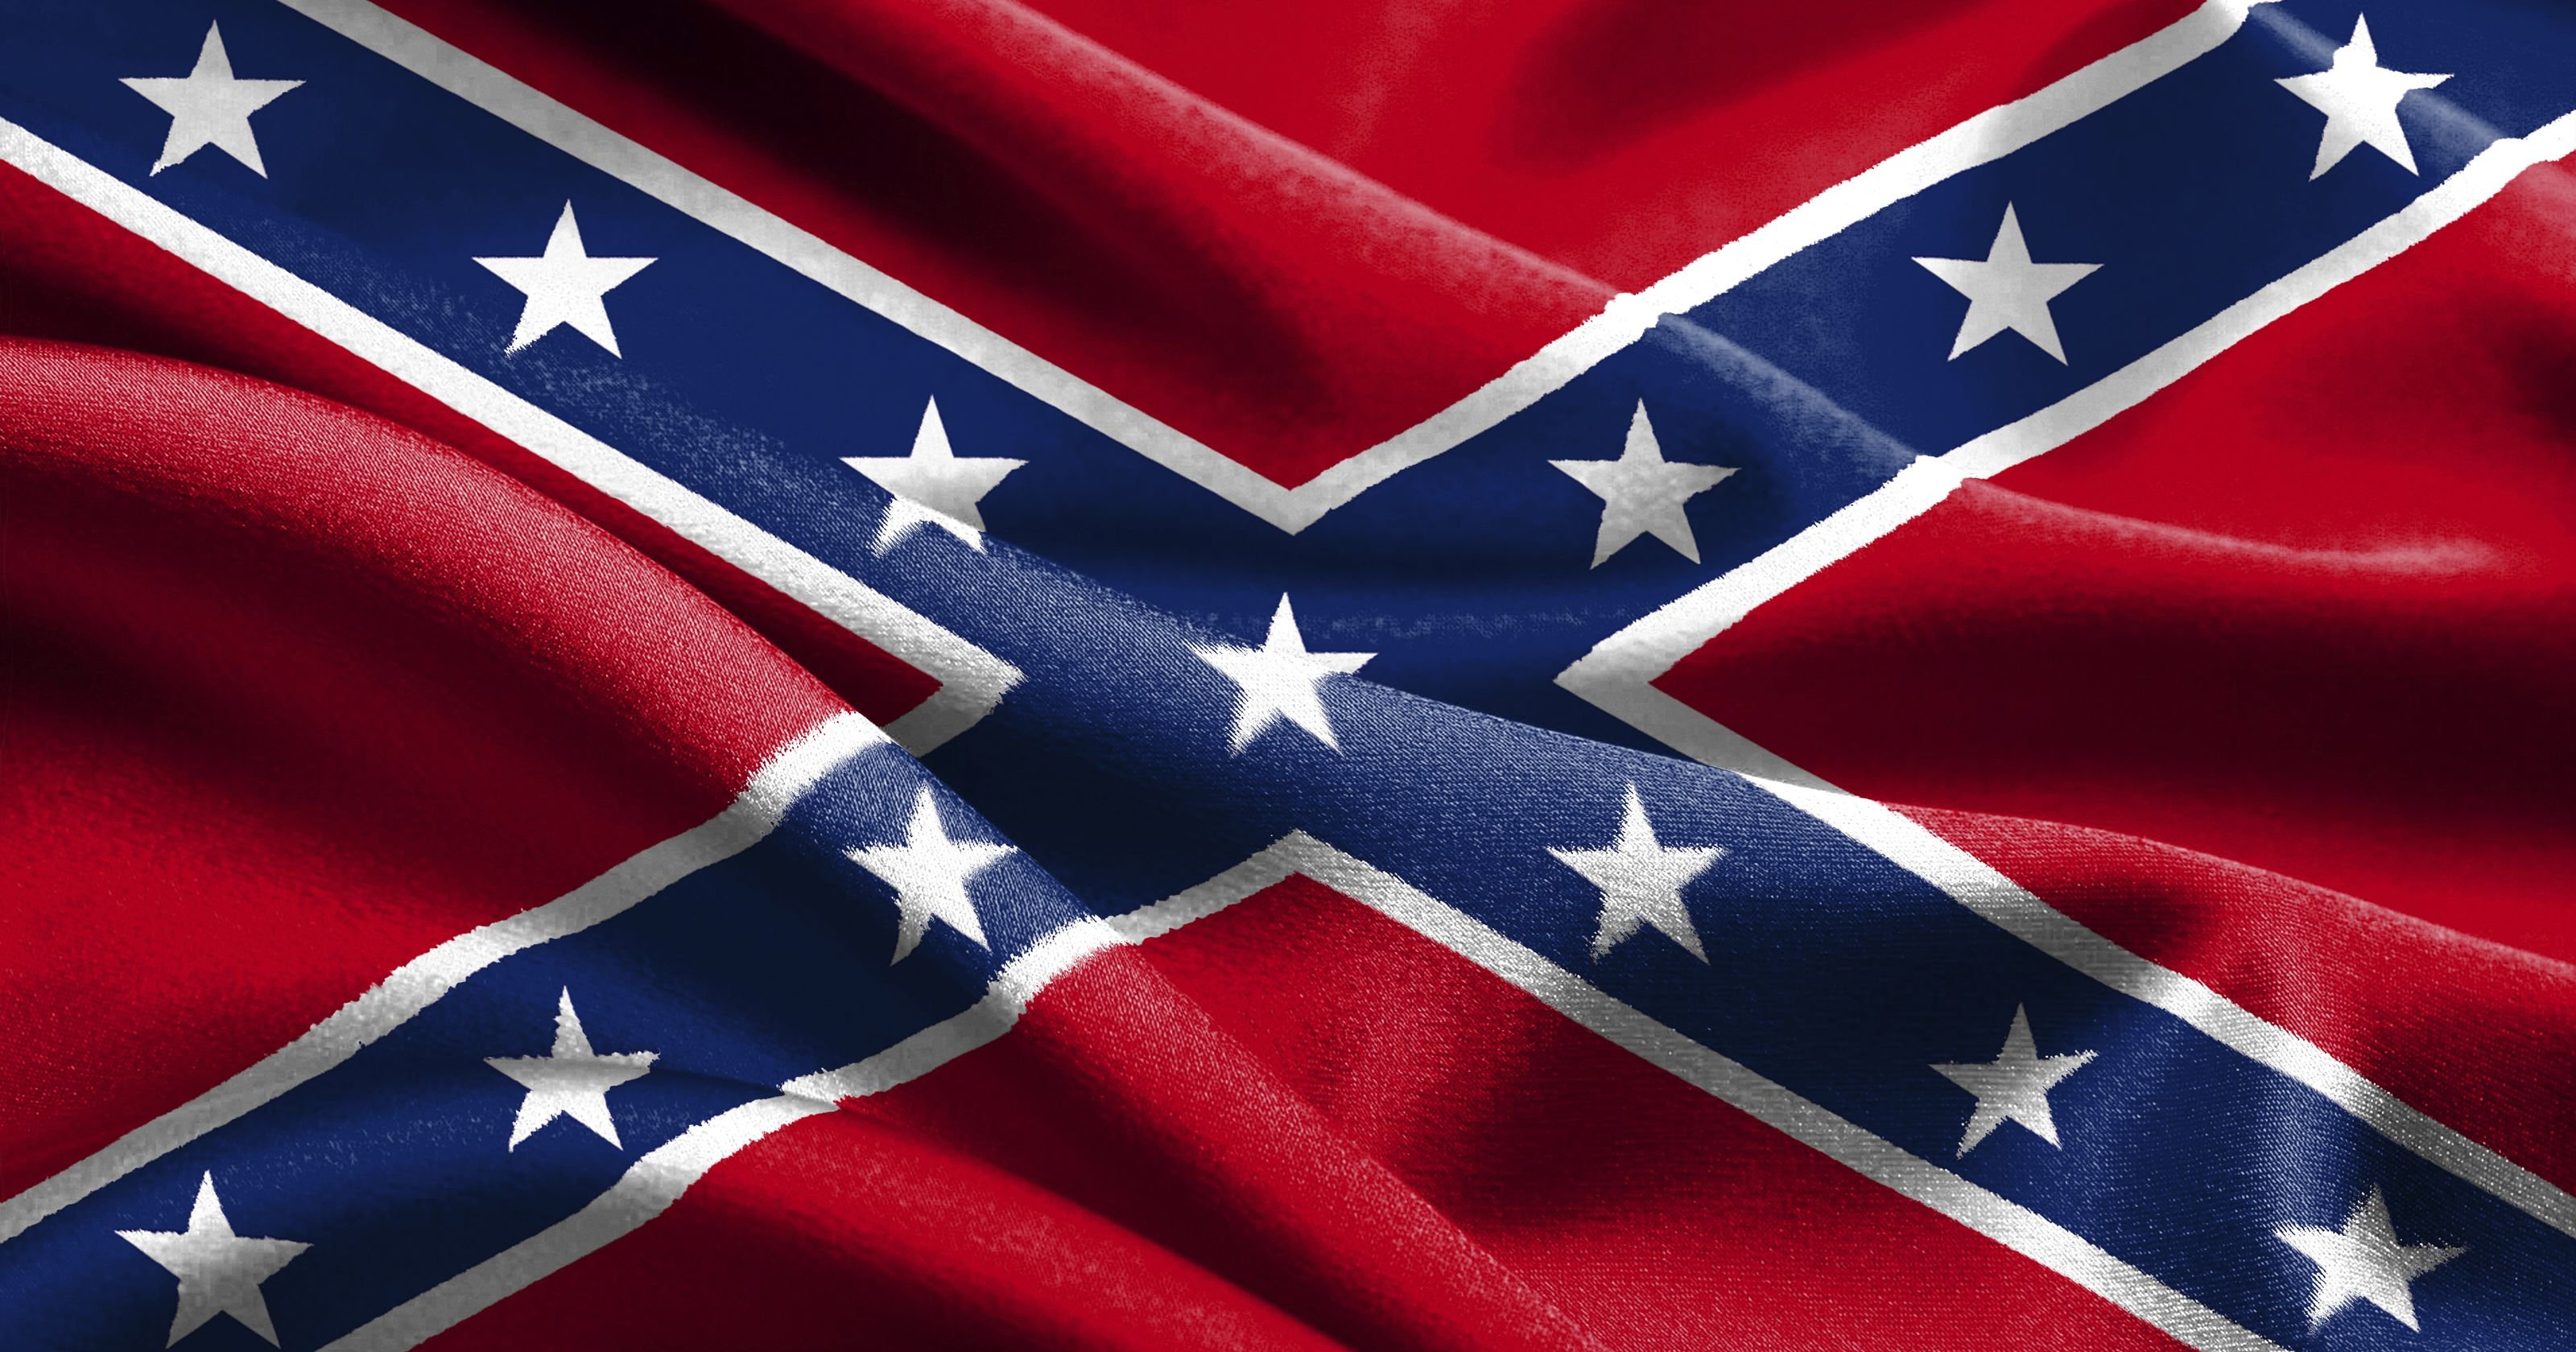 states csa civil war rebel dixie military poster wallpaper background 3200x1680